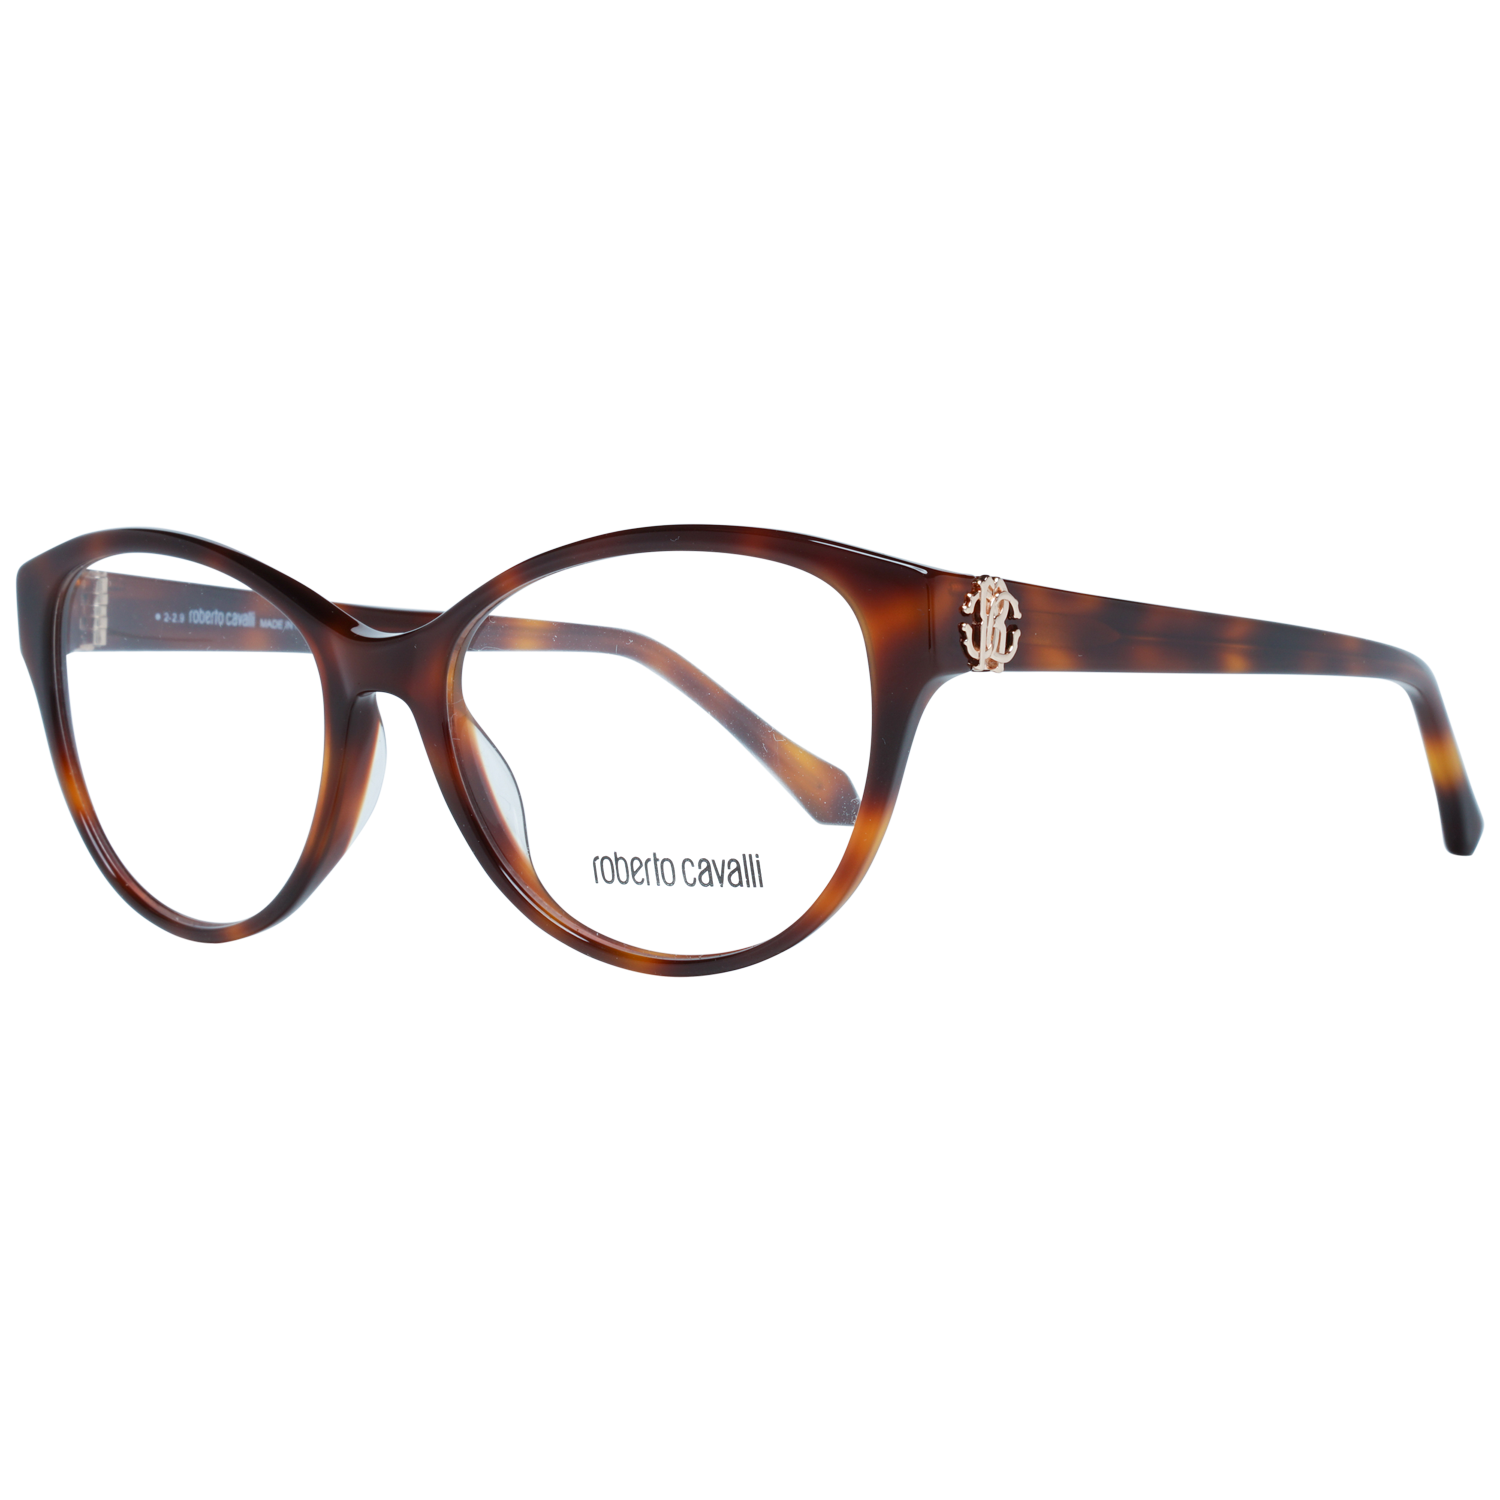 Roberto Cavalli Optical Frame RC5014 052 53 Women Brown